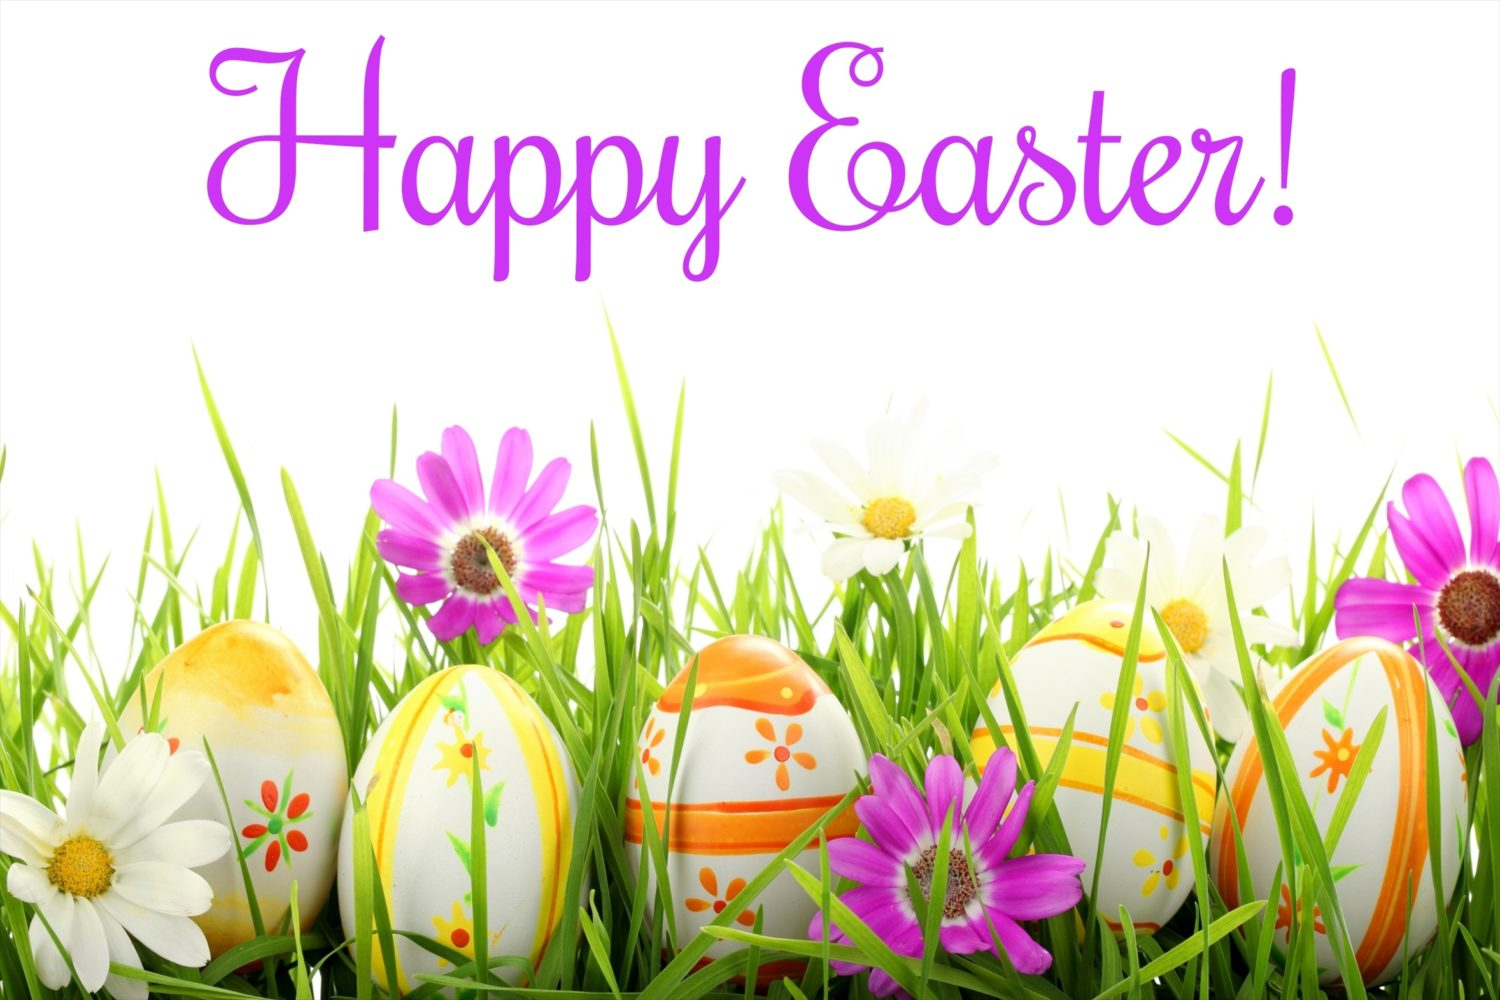 Happy Easter From Nicol Construction & Nicol Climate Control